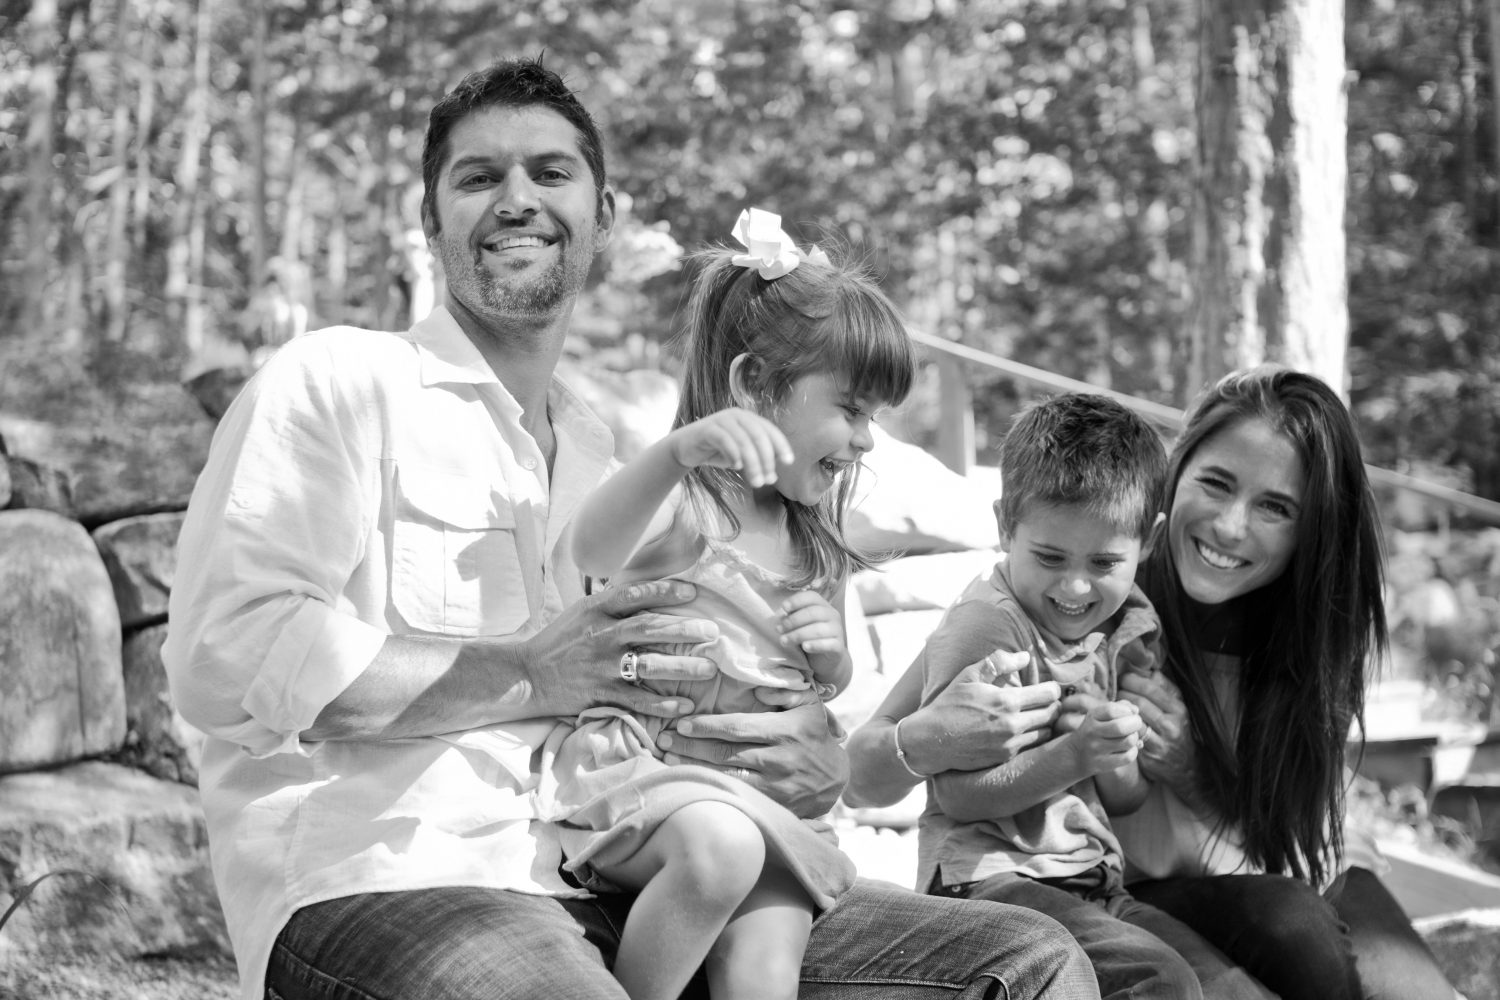 silly candid black and white photo of young family of four